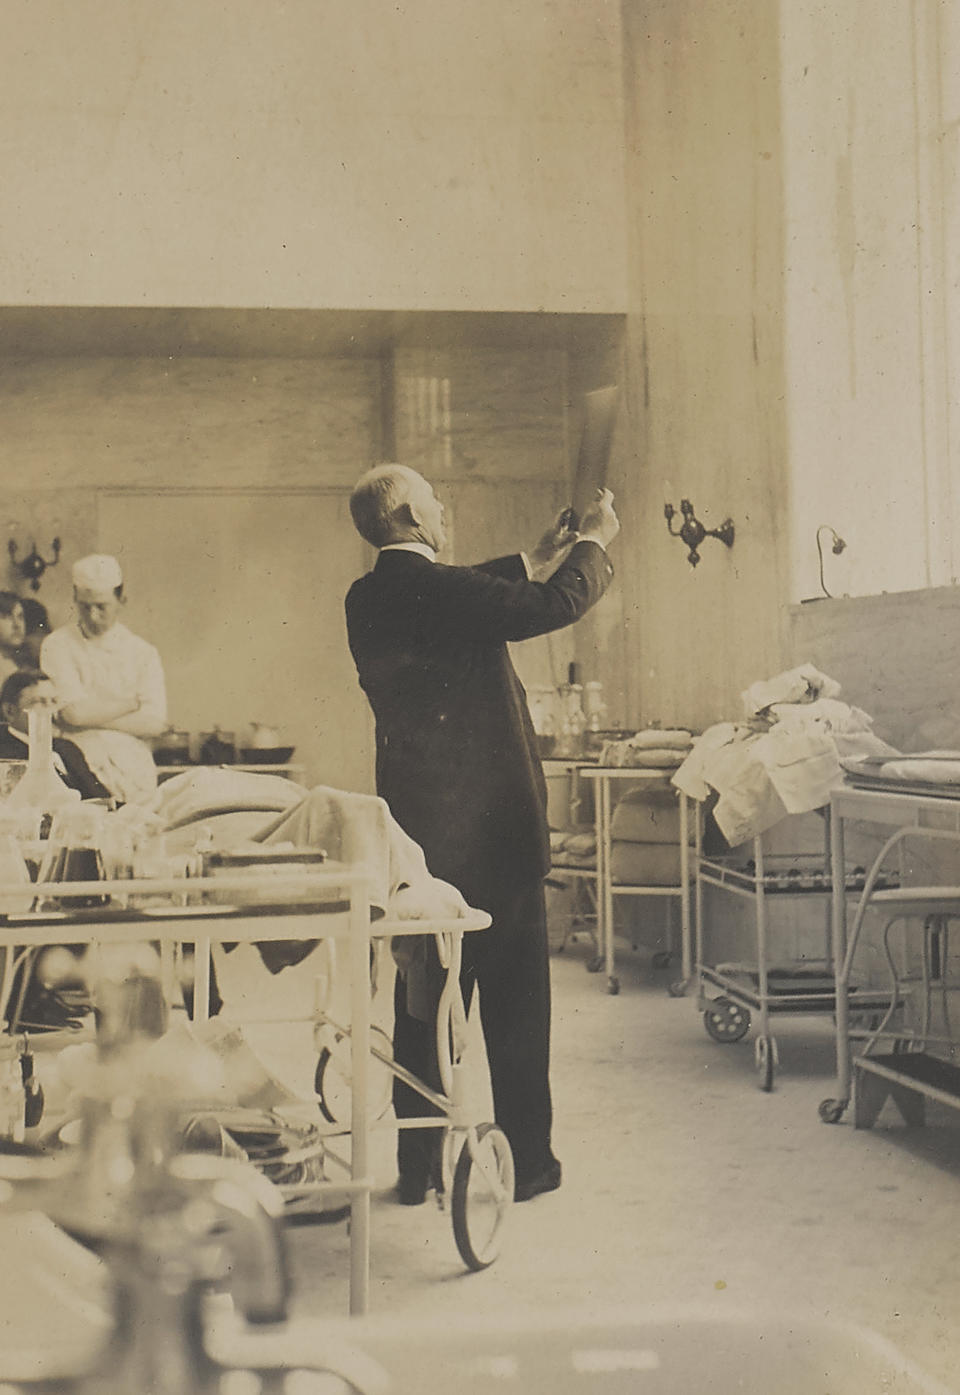 JOHNS HOPKINS HOSPITAL: PHOTOGRAPHY ALBUM. Album containing 60 photographs, mounted 1 per page on black paper, gelatin silver prints, each roughly 98 x 75 mm, 1903-1904, of the original staff in the early years of Johns Hopkins Hospital,